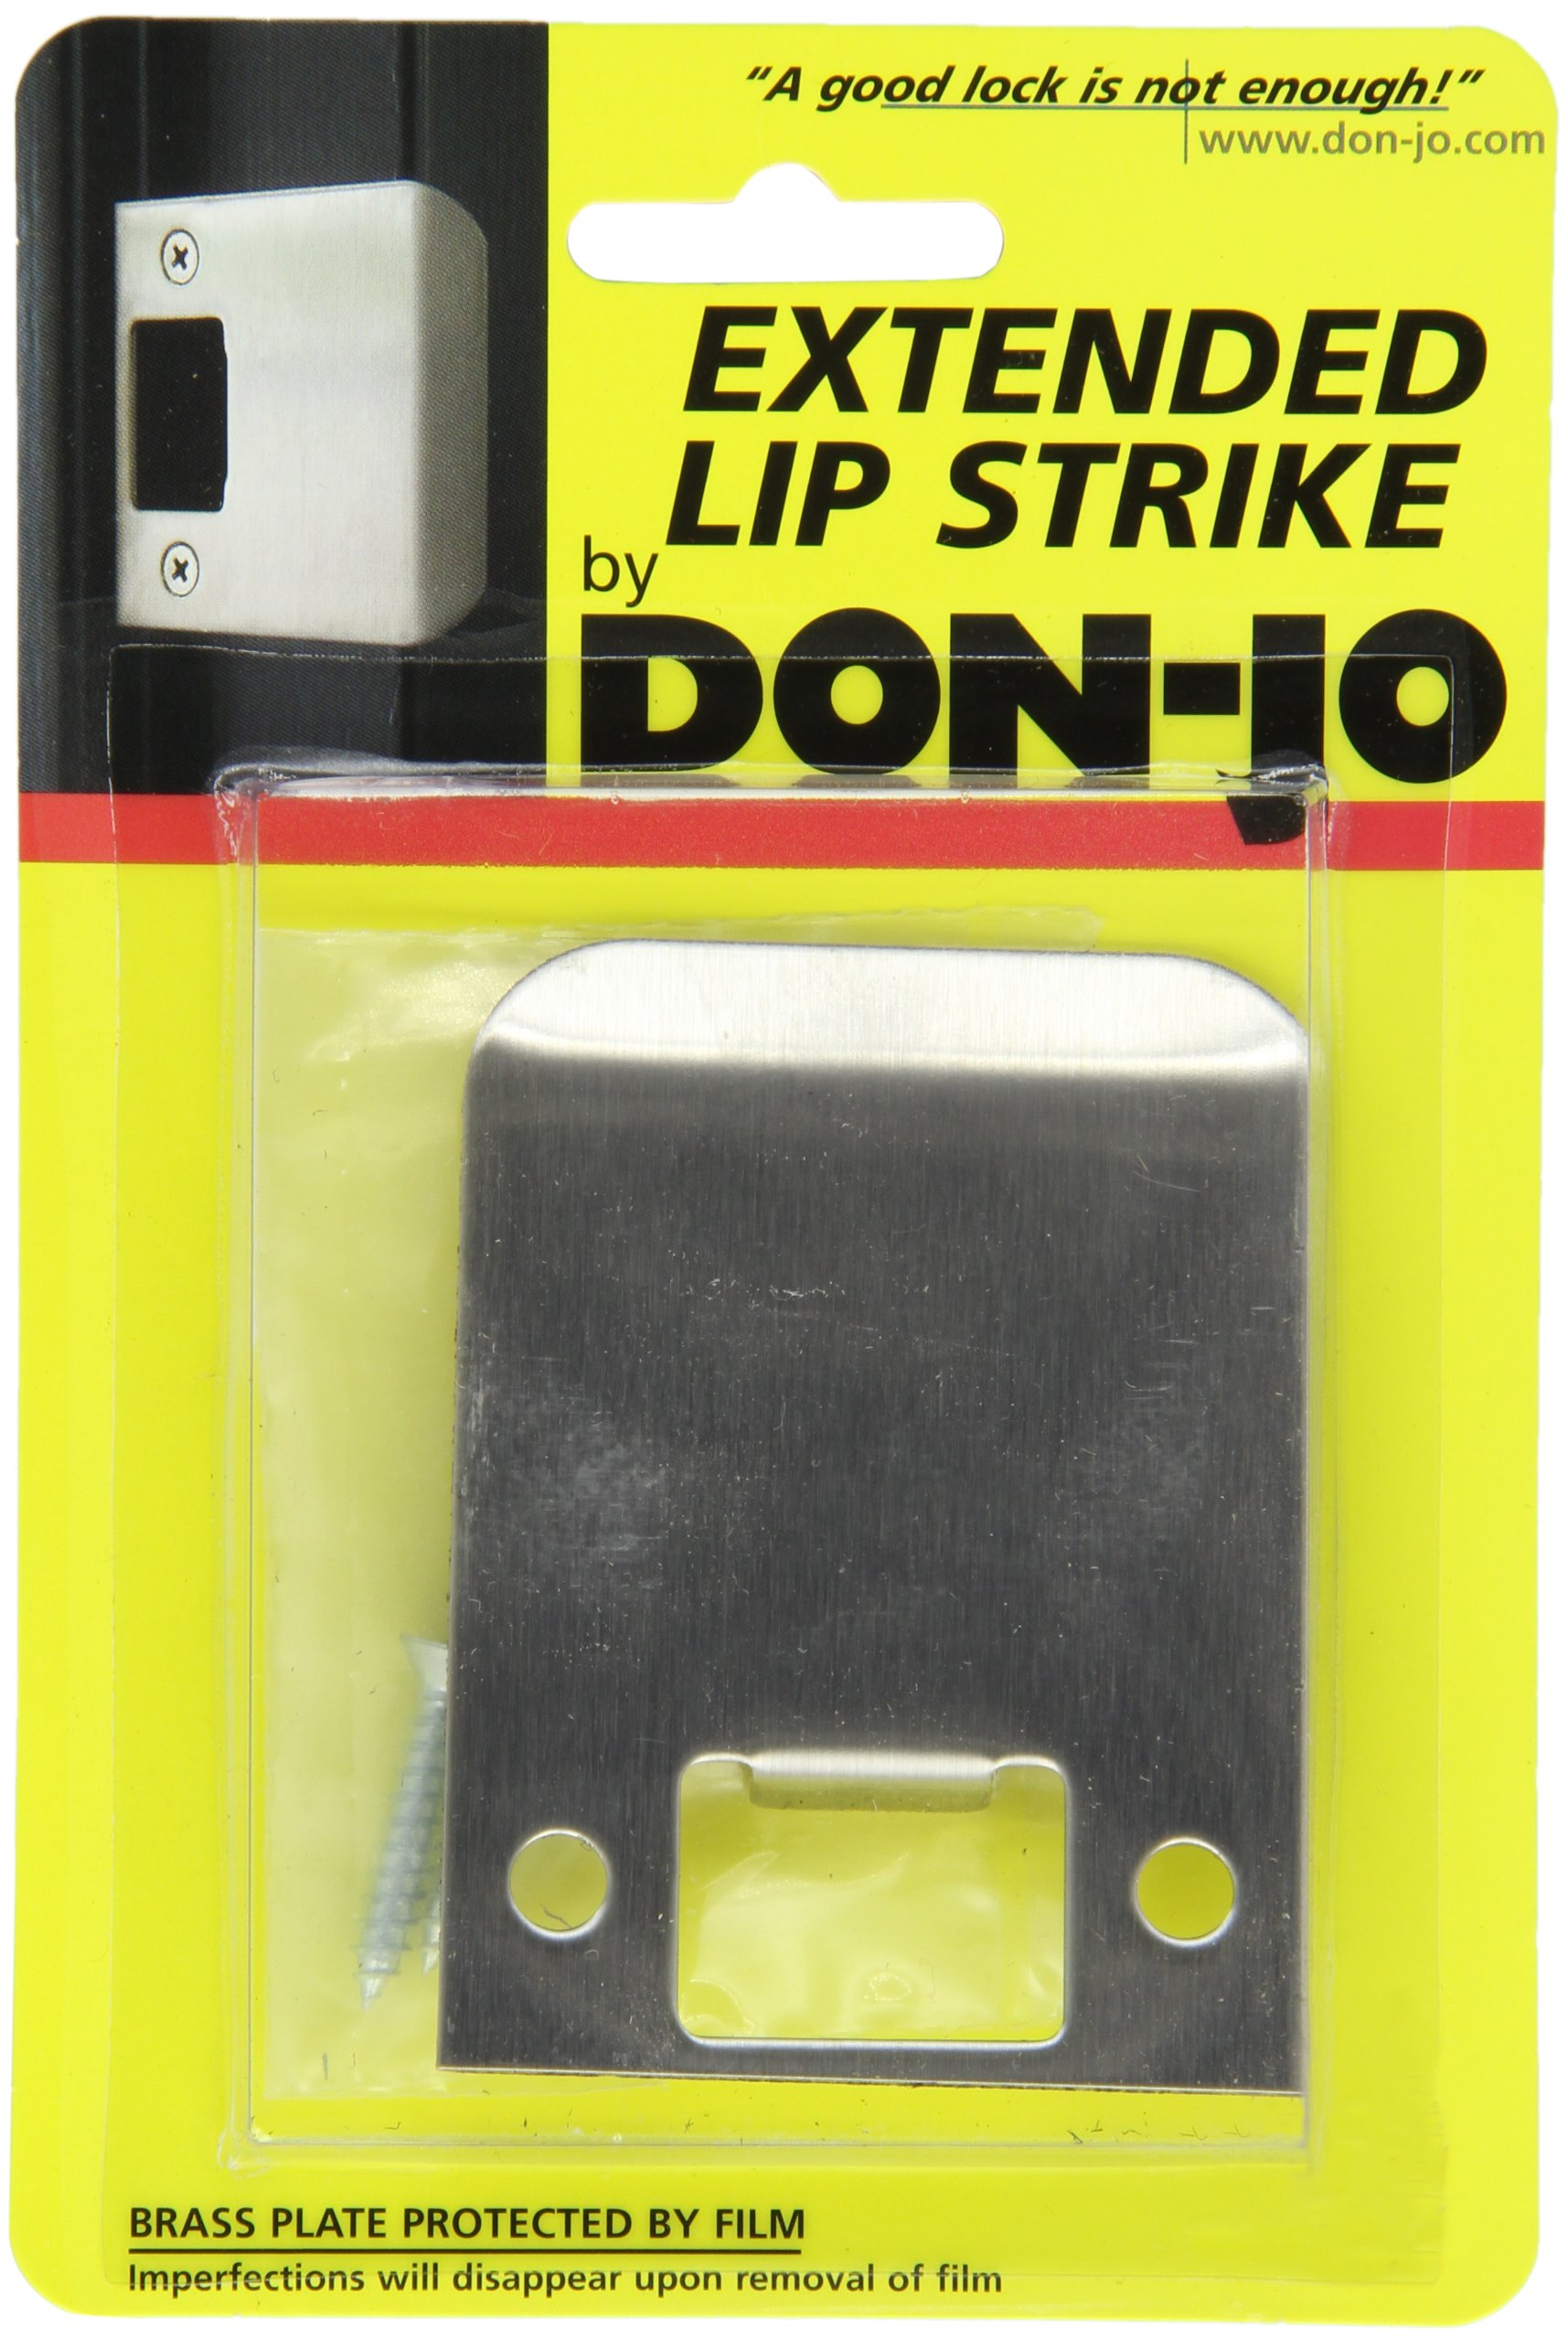 Don-Jo EL 125 18 Gauge Extended Lip Strike, Satin Stainless Steel Finish, 2-1/2'' Width x 2-1/4'' Height (Pack of 10)